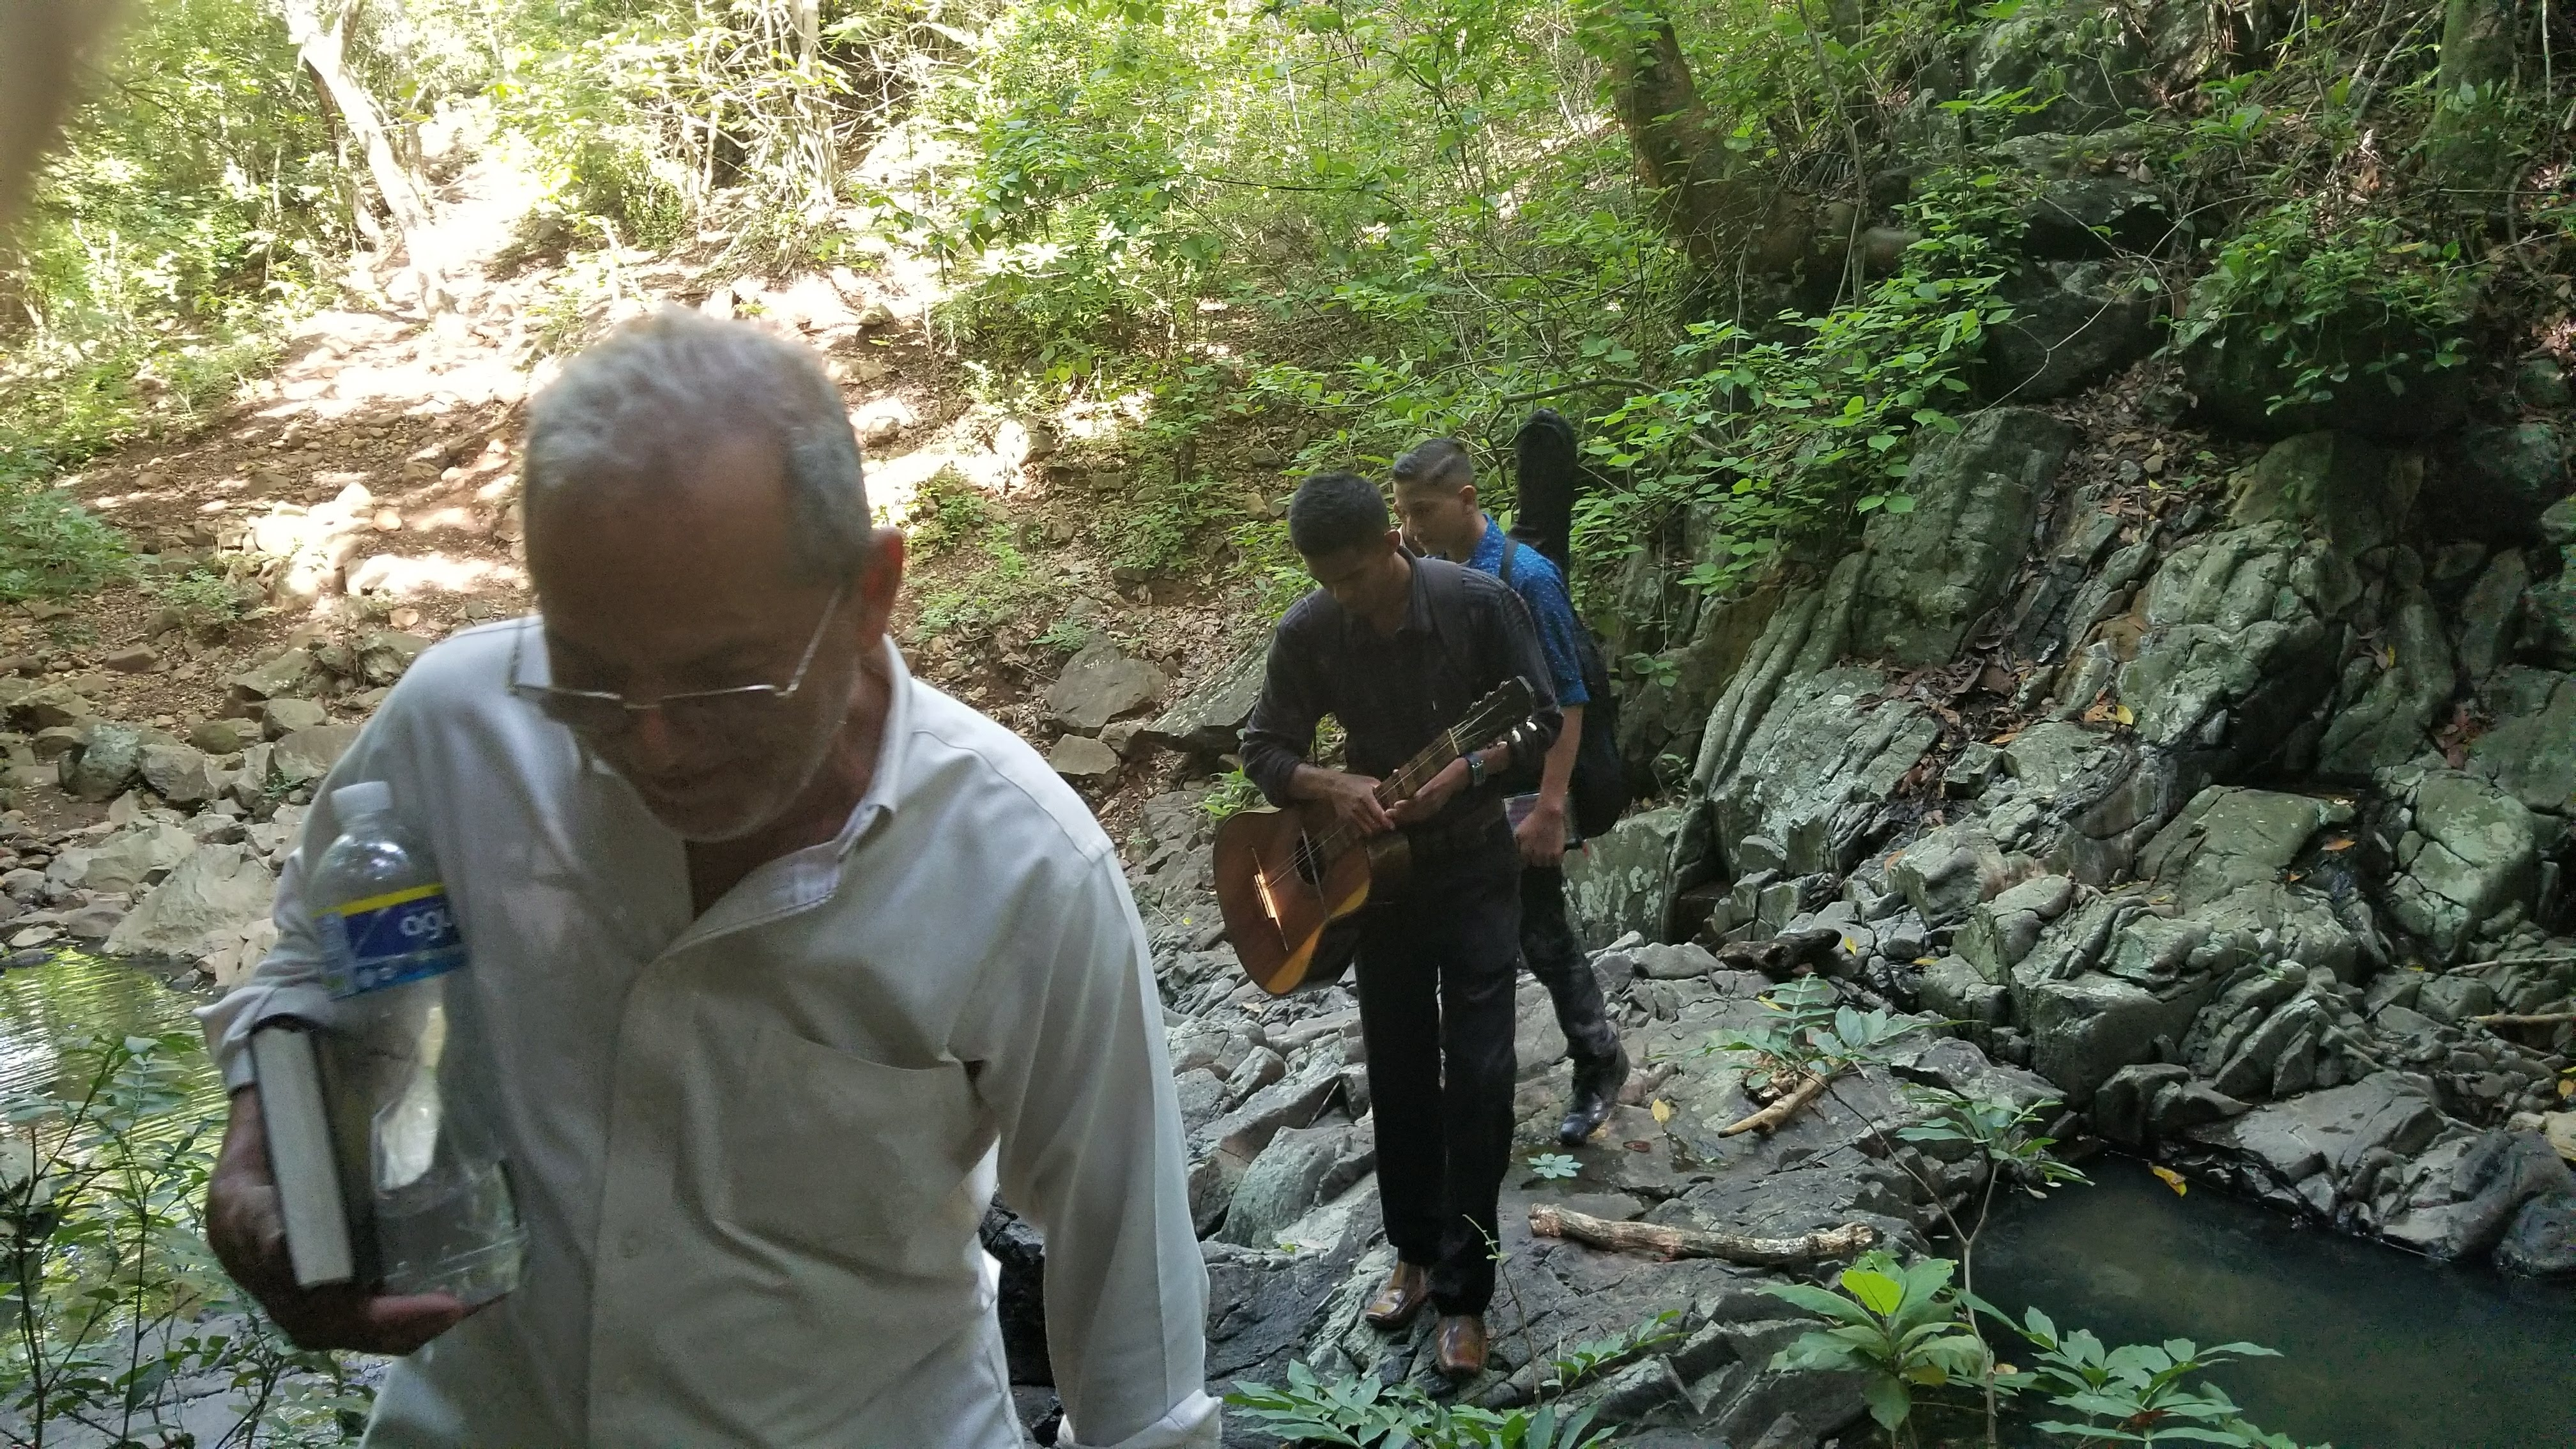 Pastor Juan Rodas and musicians from southern coastal church climb a creek bed to attend a baptism.